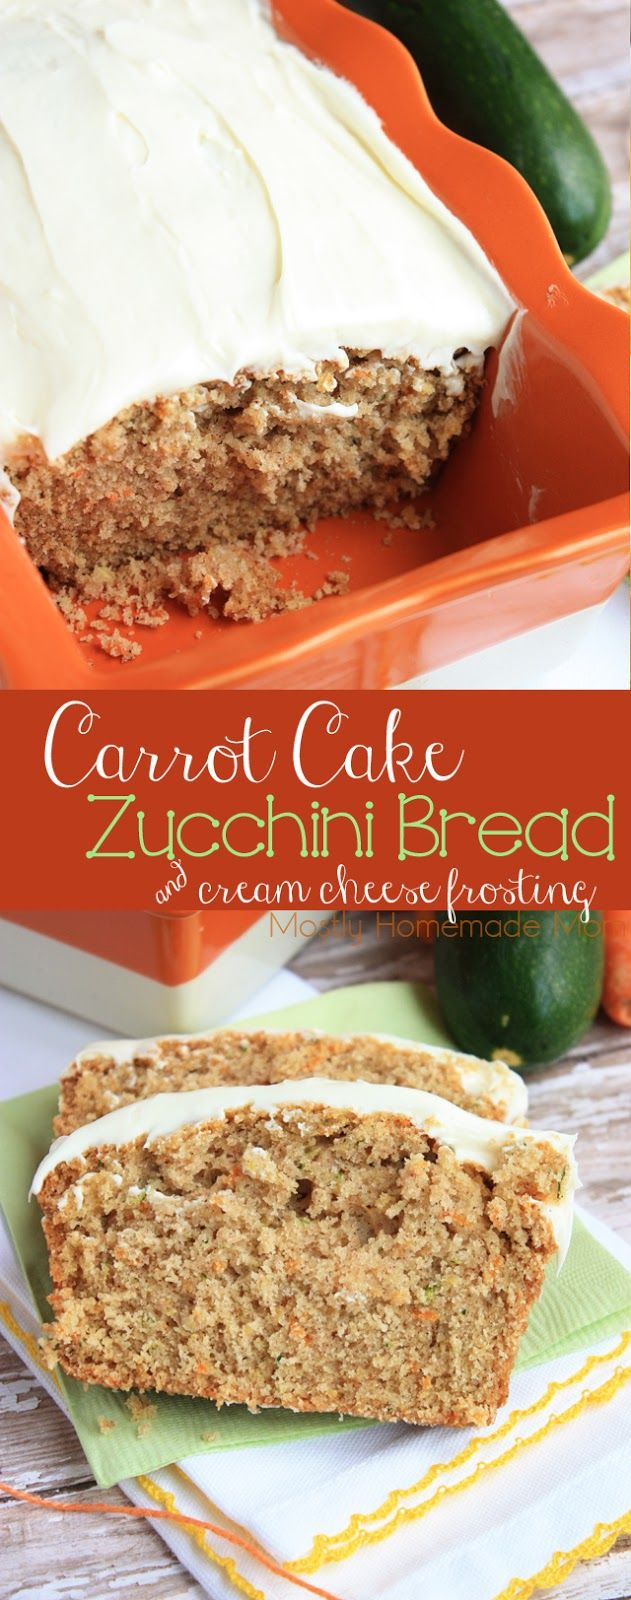 This delicious bread combines moist carrot cake with spiced zucchini bread and topped with a homemade cream cheese icing. You'll get two br...